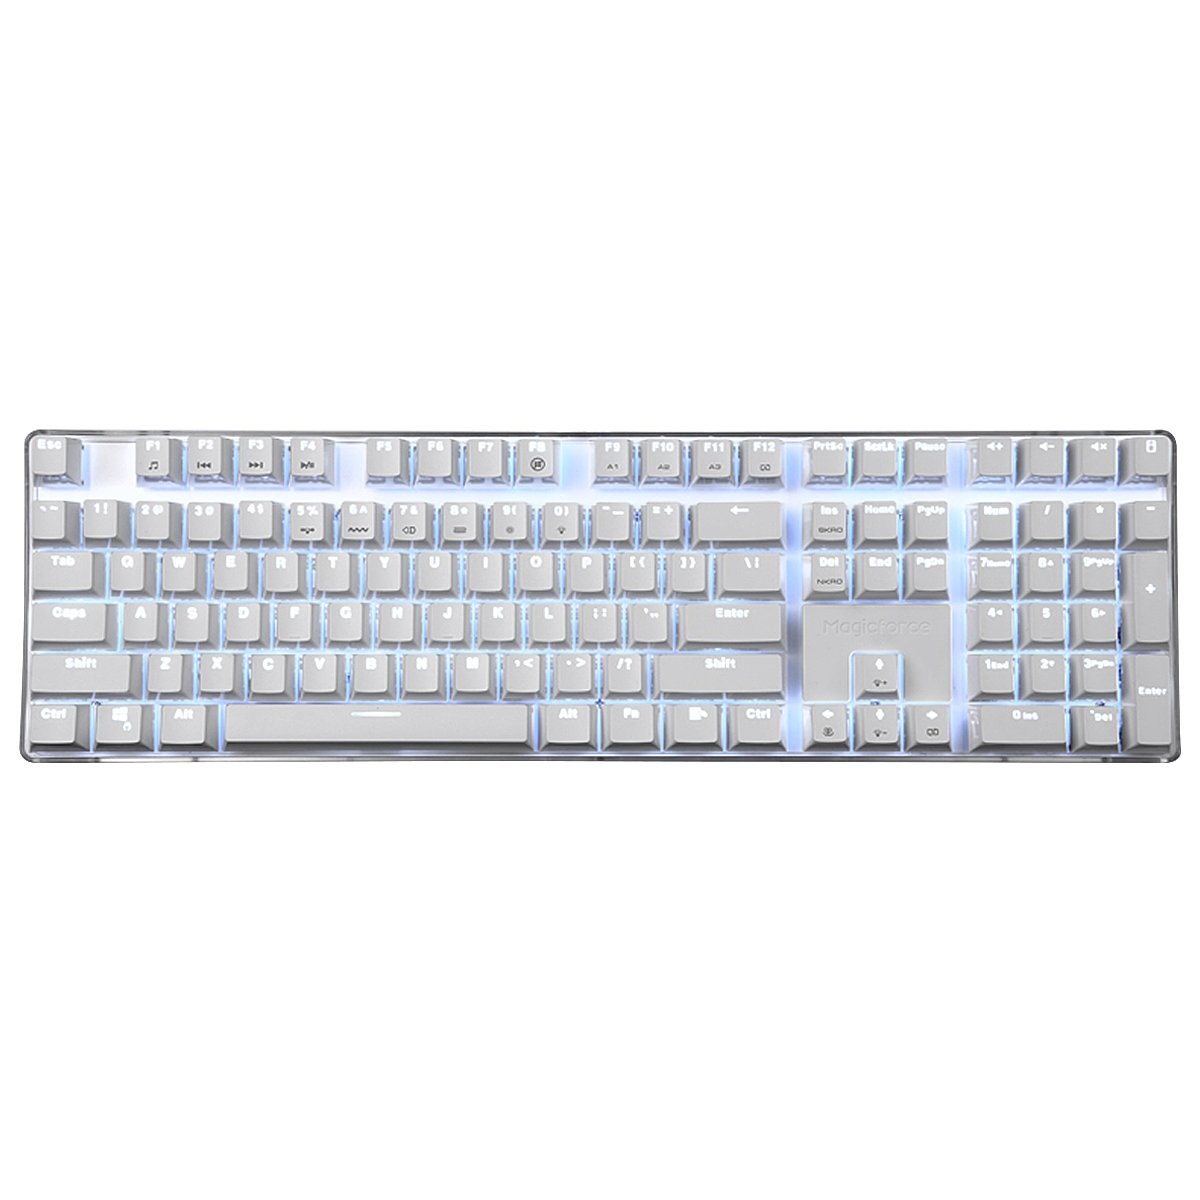 Happy Deals 20 Off Qisan Mechanical Keyboard Wired Gaming Keyboard Red Switch 100 Full Size 108 Keys GATERON Switch with White Backlight Case White Magicforce